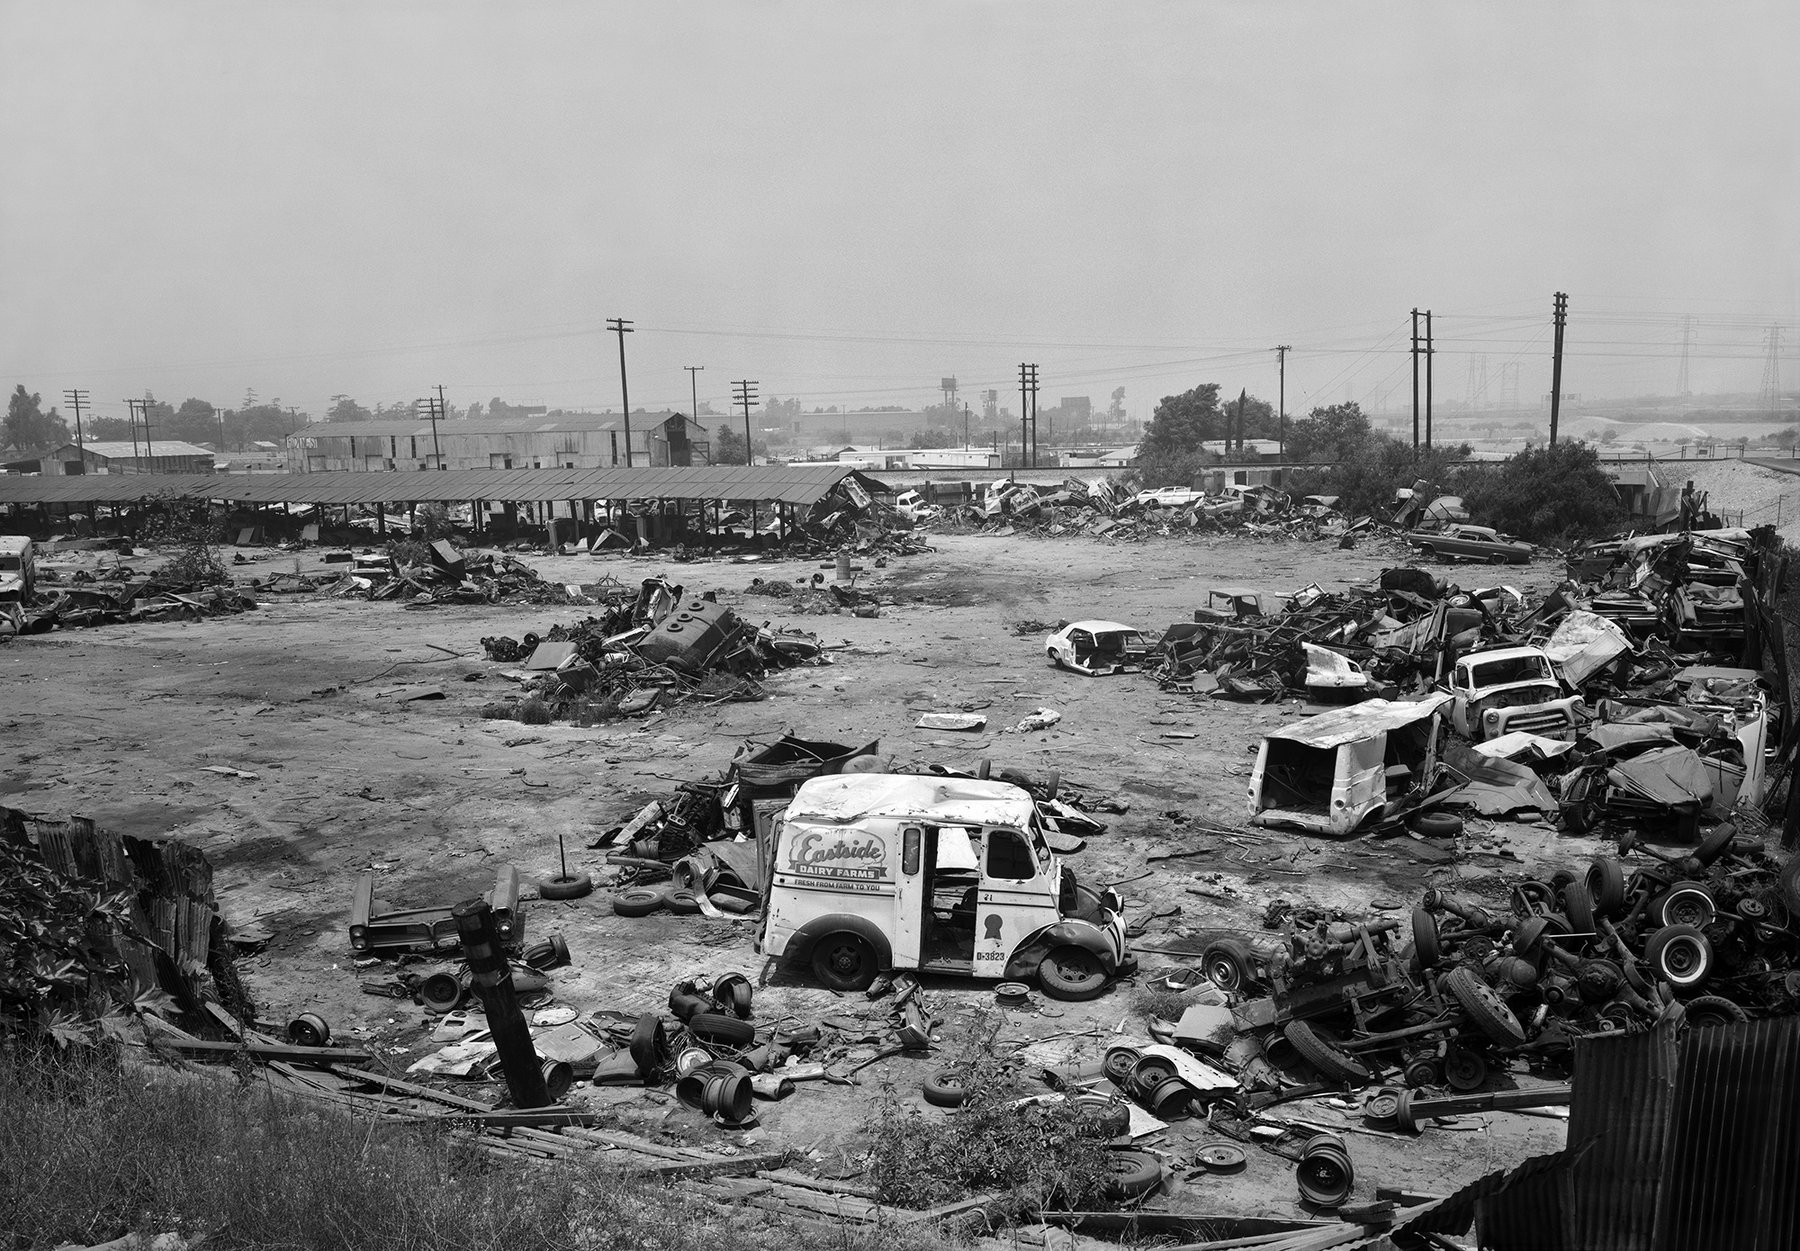 Black and white image of a metal scrap yard